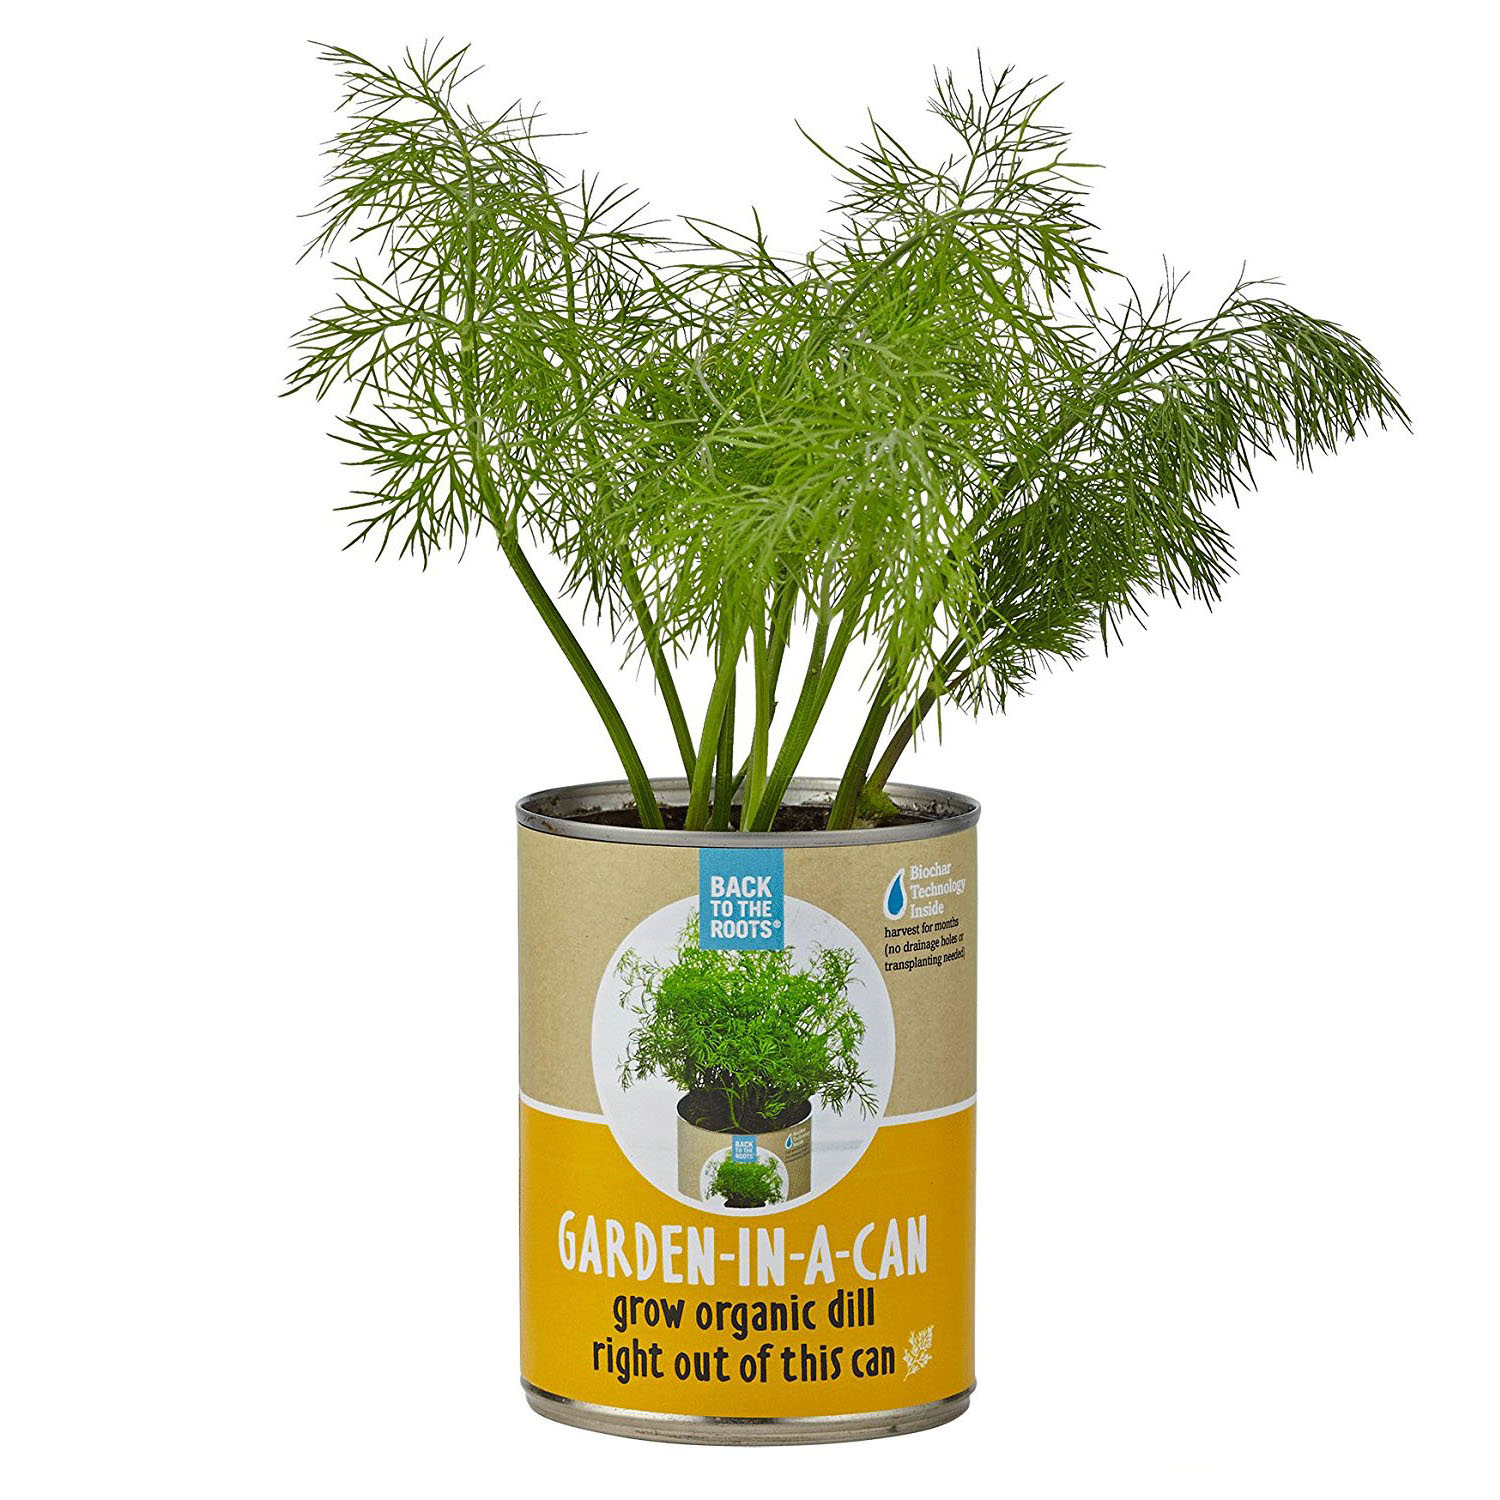 Back to the roots organic garden in a can with seeds and for Organic soil